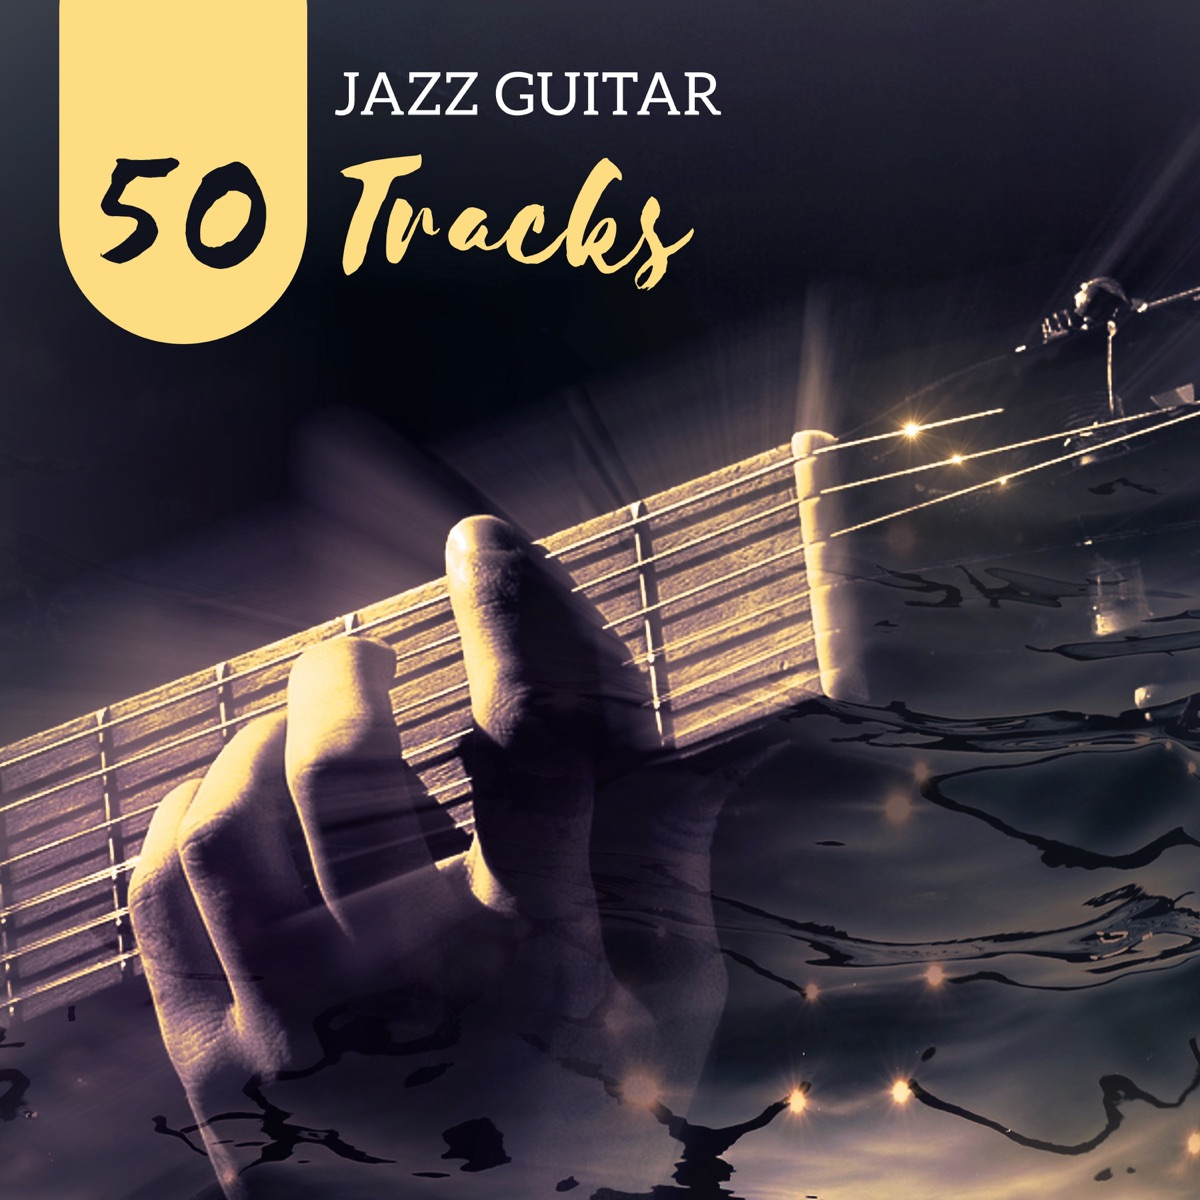 Jazz Guitar - 50 Tracks, Relaxing Instrumental Music, Free